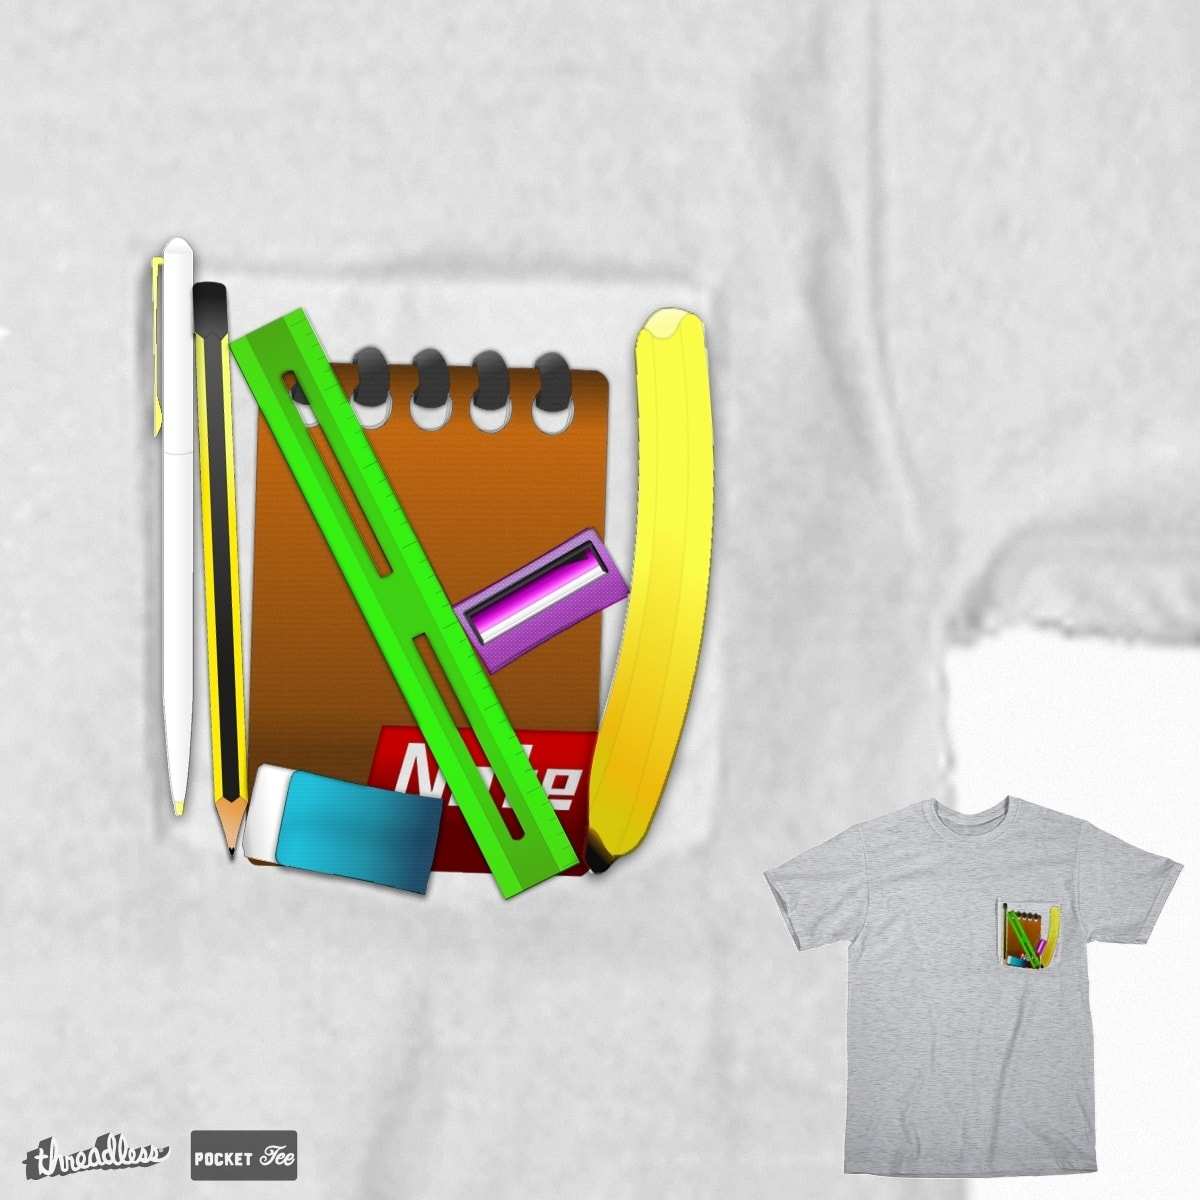 Poket : Equipment pocket by rezminezman on Threadless